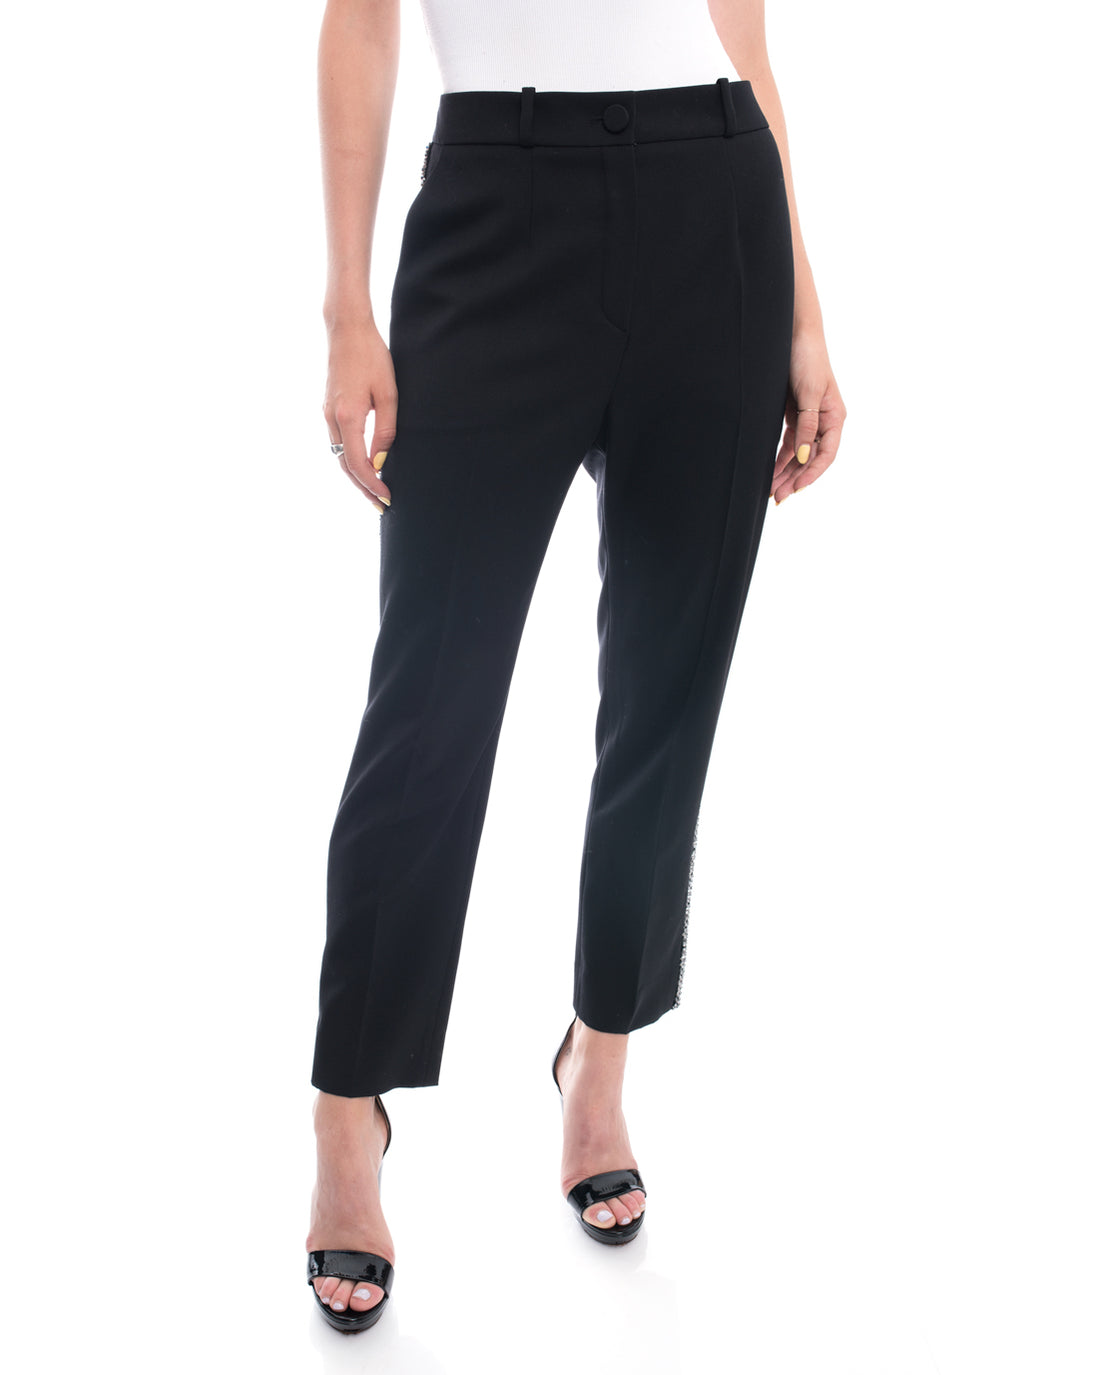 Lanvin Black Trouser with Beaded Tuxedo Trim - 8